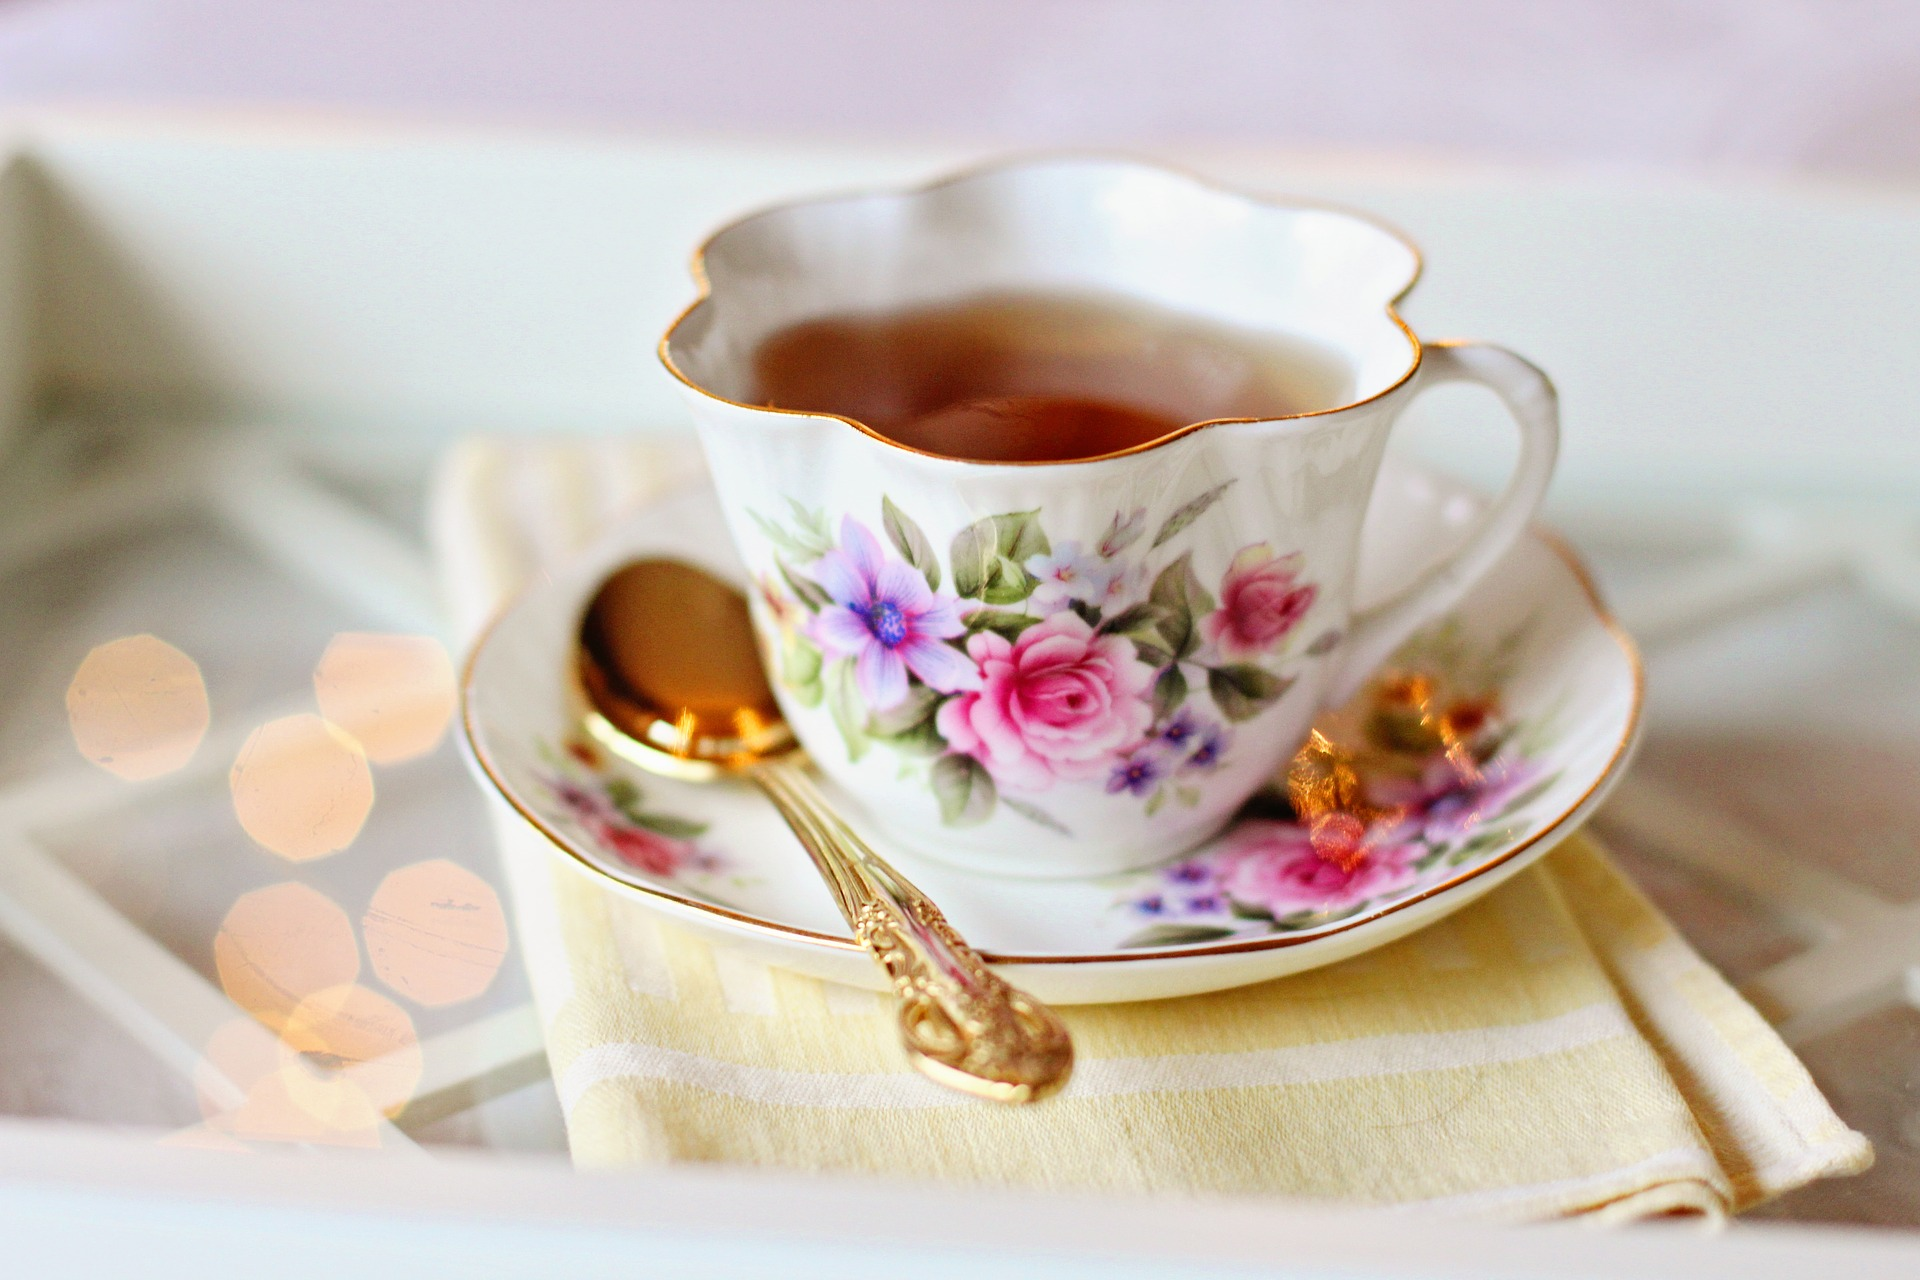 5 Best weight loss teas that work-These are natural